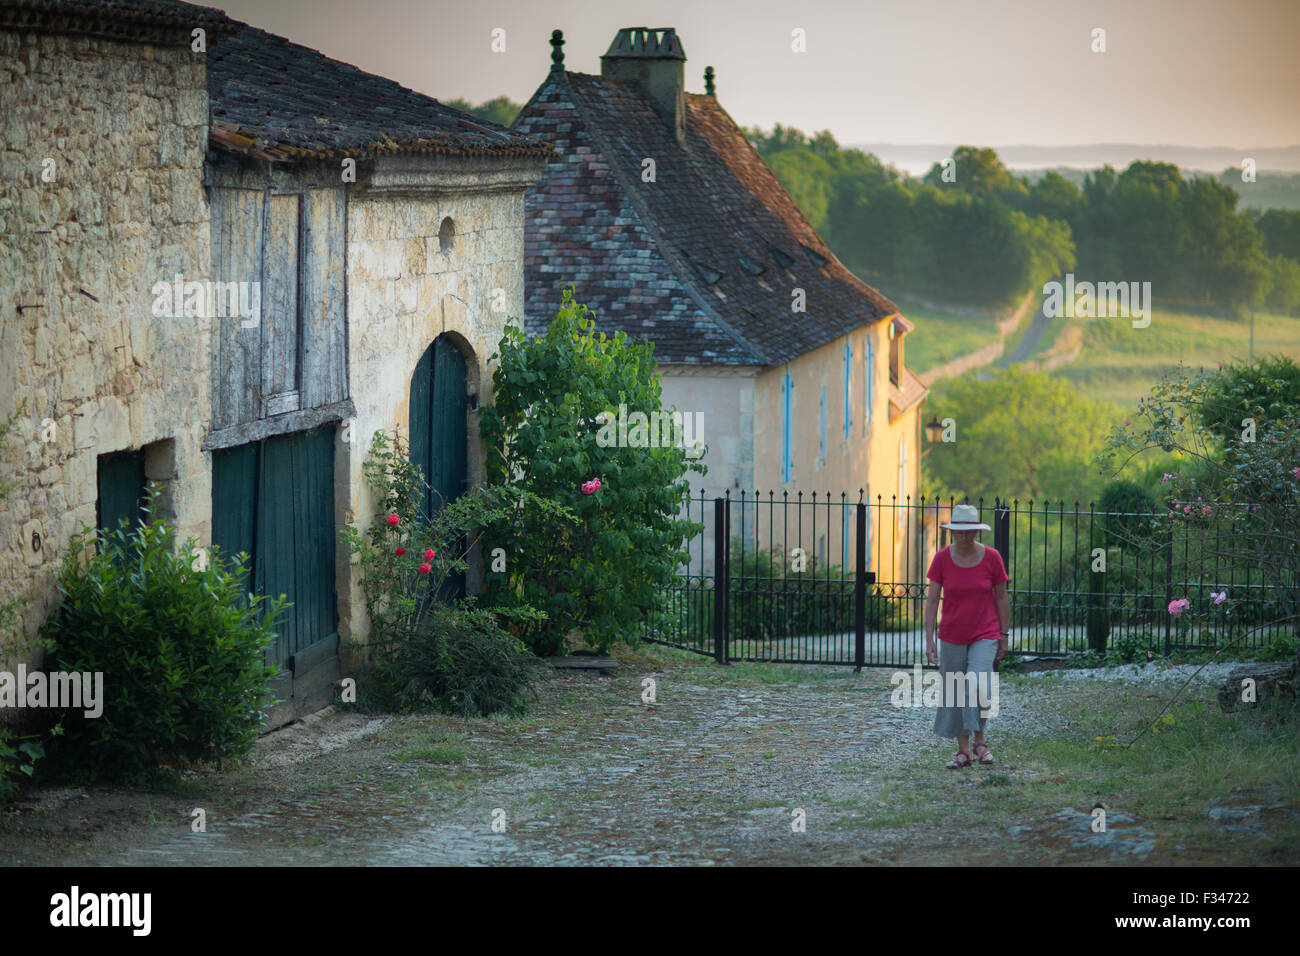 Wendy walking in a lane in Molières, Pays de Bergerac, Périgord, Dordogne, Aquitaine, France - Stock Image